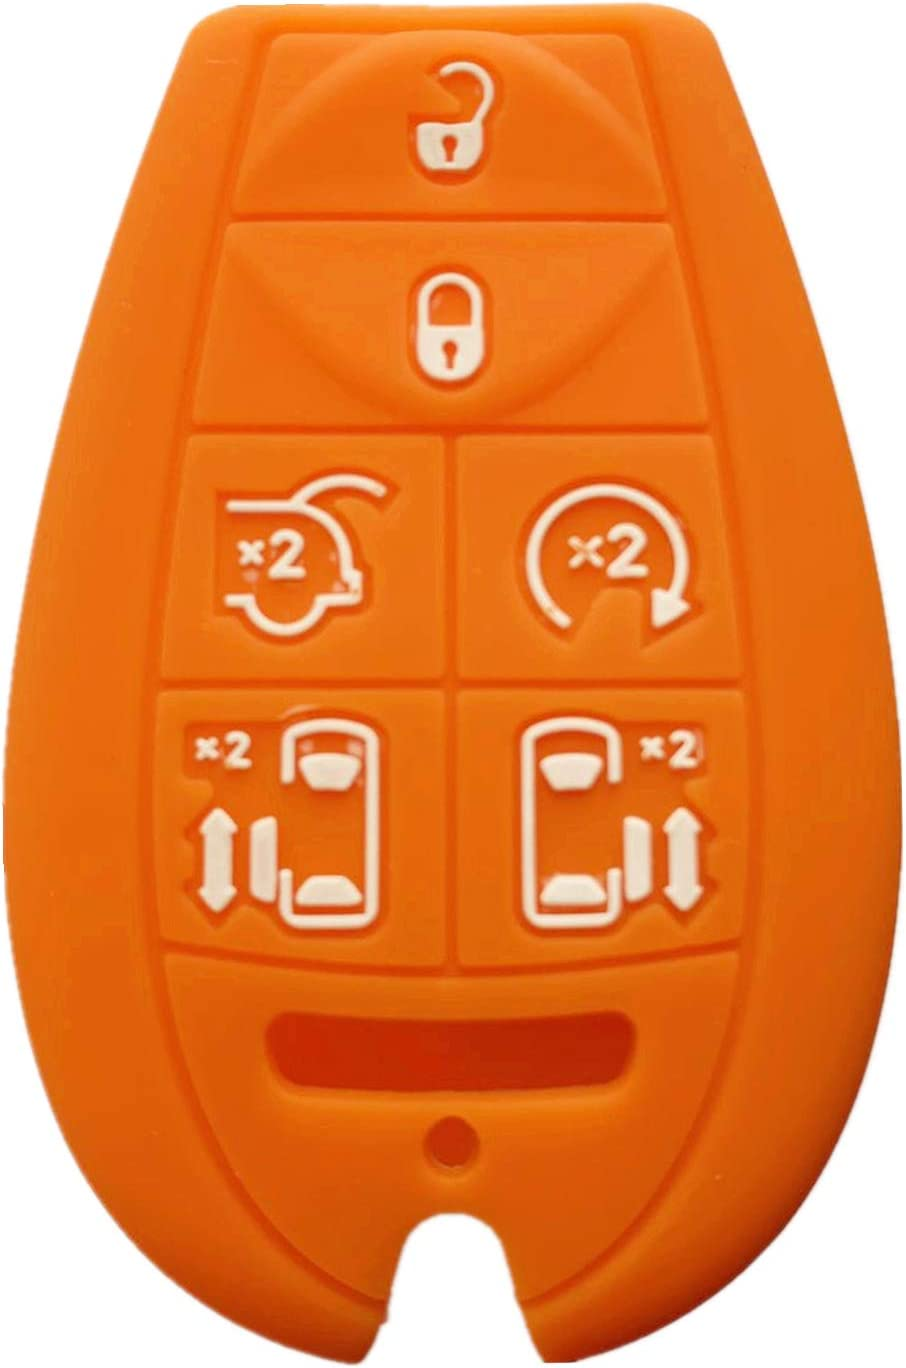 Rpkey Silicone Keyless Entry Remote Control Key Fob Cover Case protector For Chrysler Town /& Country Dodge Grand Caravan Volkswagen Routan M3N5WY783X 2701A-C01C 68043594AA 68043594 AA orange